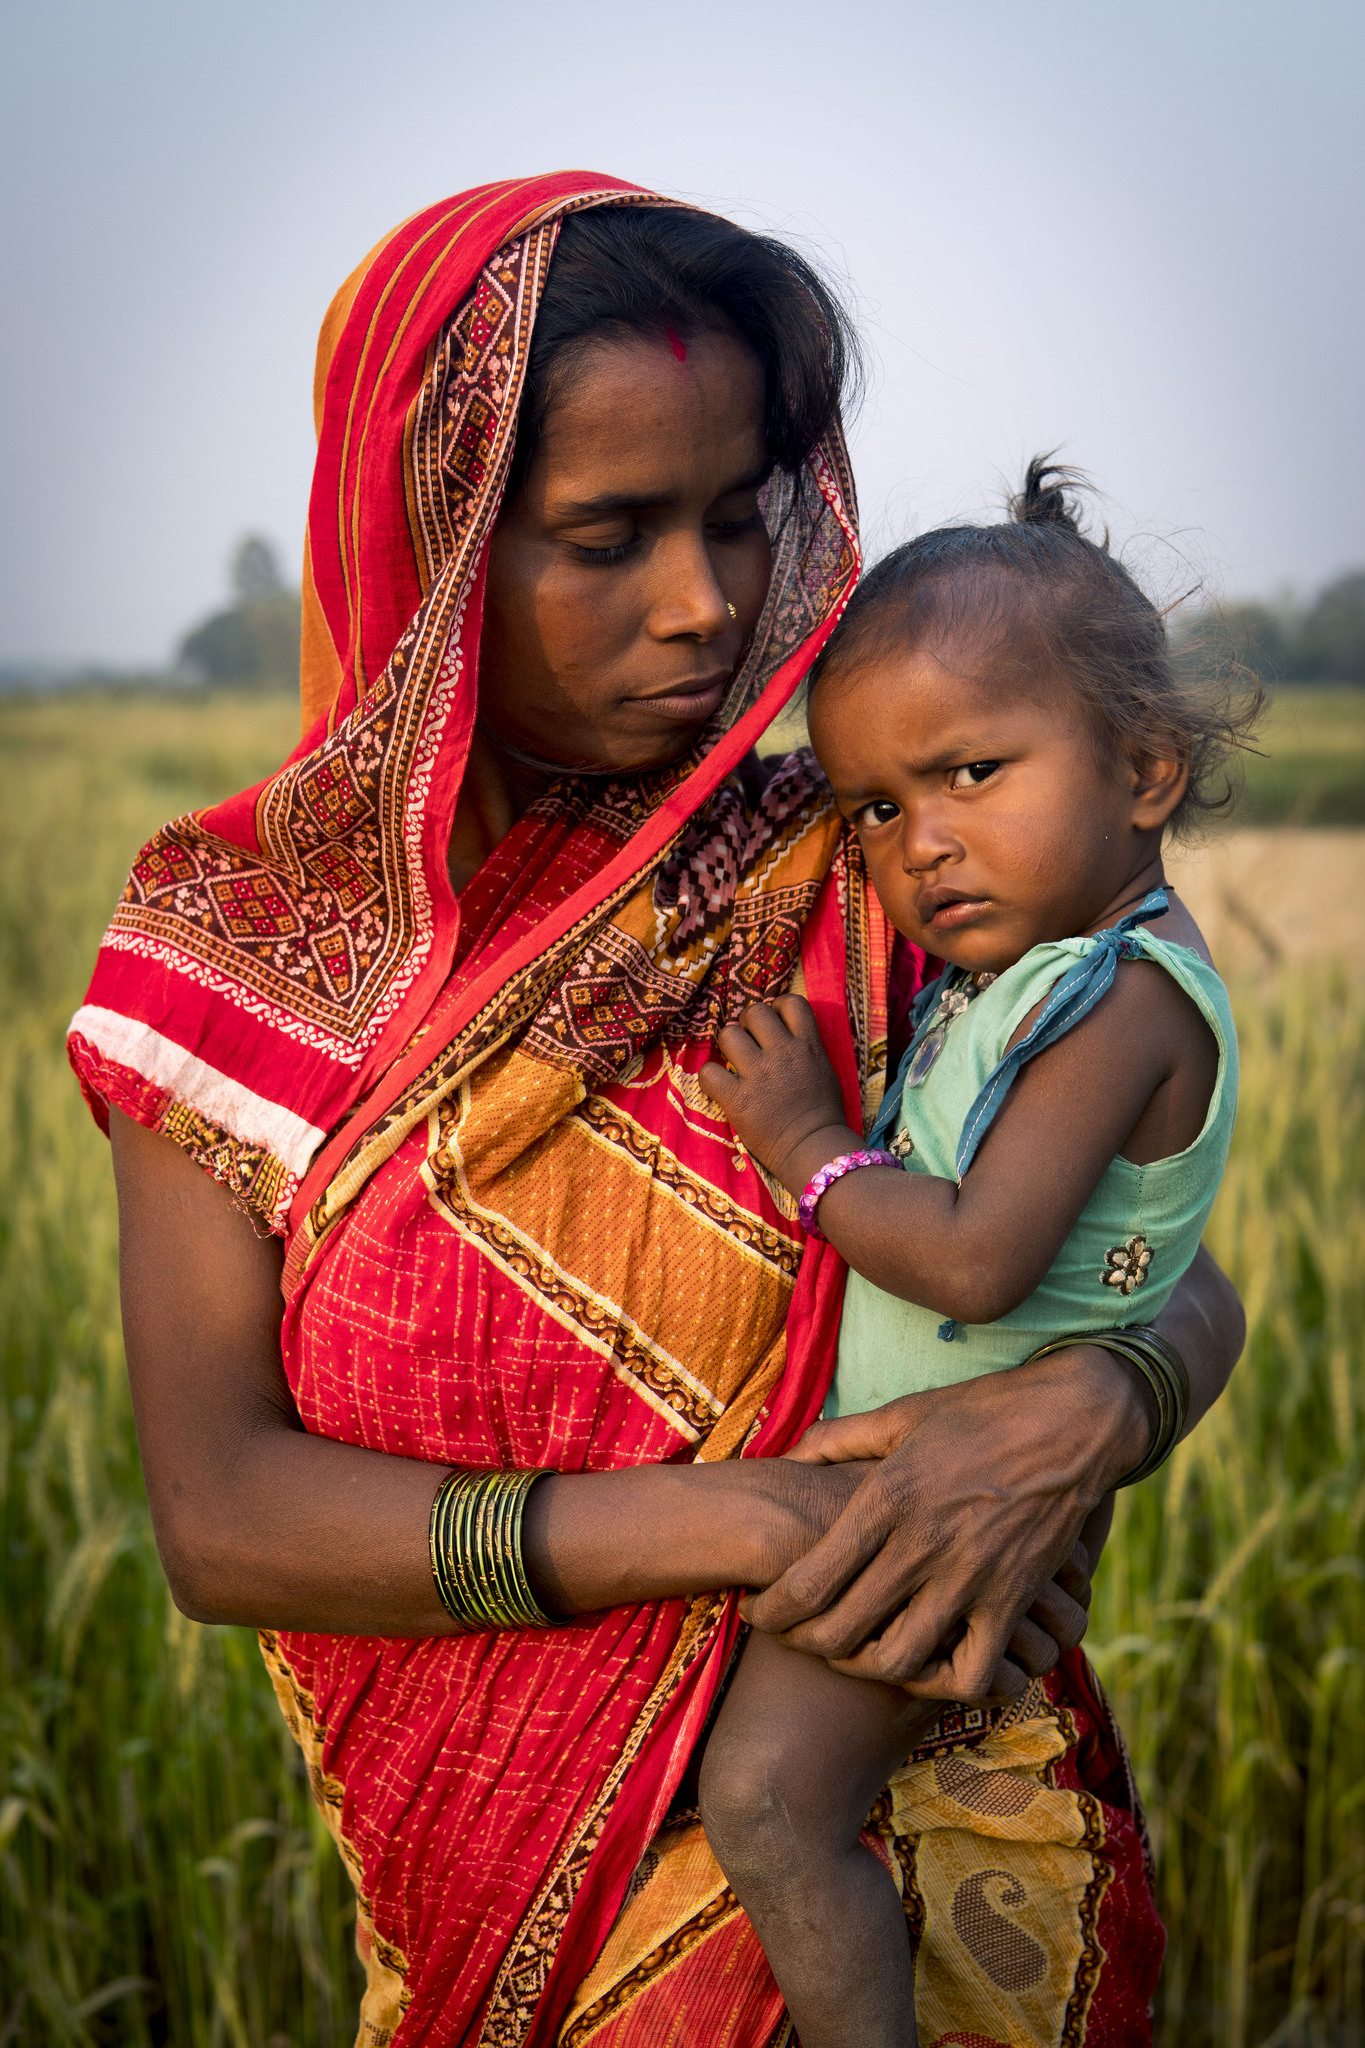 Mother and daughter in Saptari, Nepal. Photographed by Brendan Davis